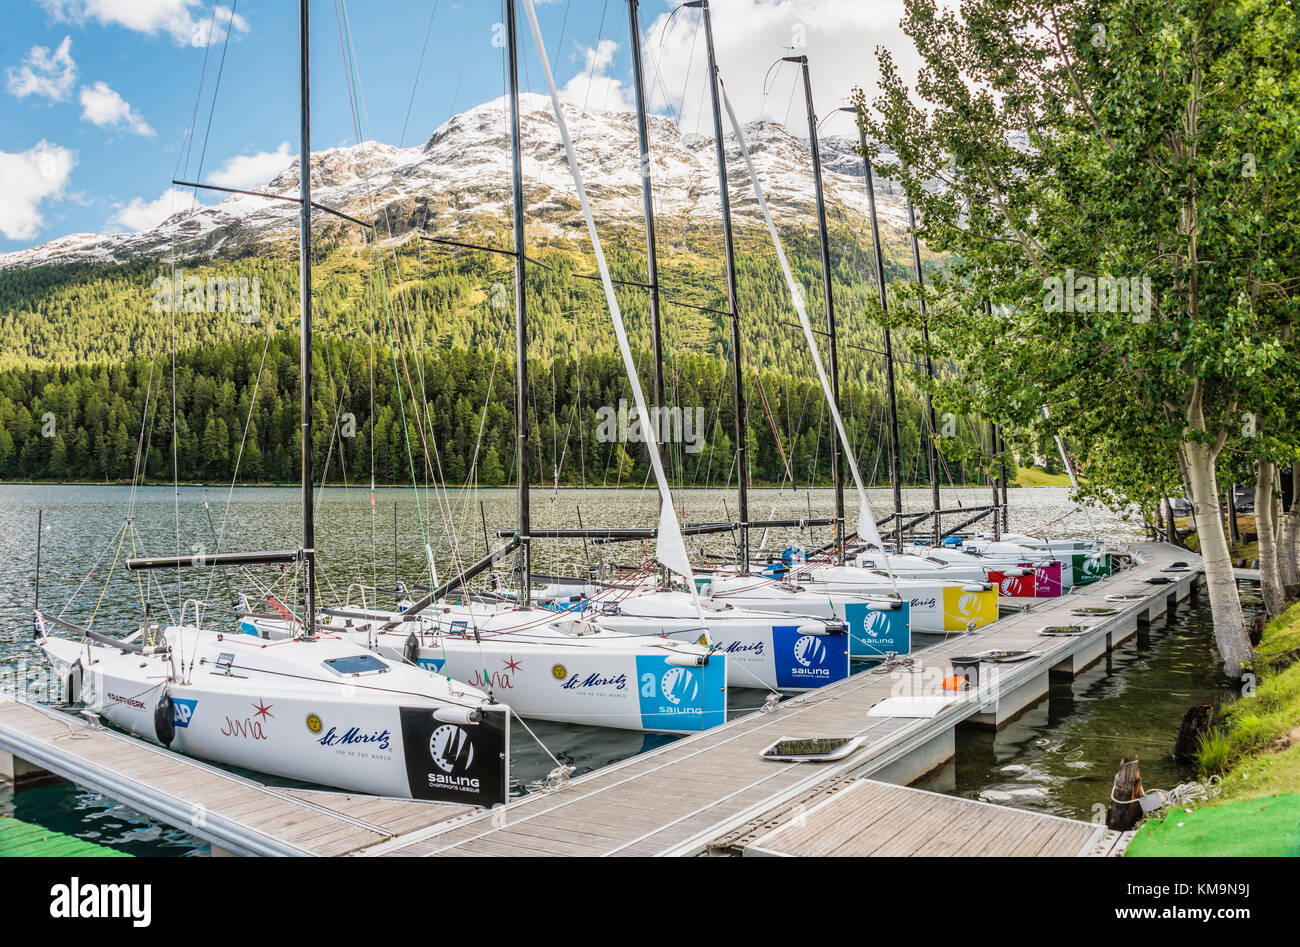 Sailing boats moored at Lake St.Moritz during the Match Race, St.Moritz, Switzerland | Segelboote vor Anker beim - Stock Image